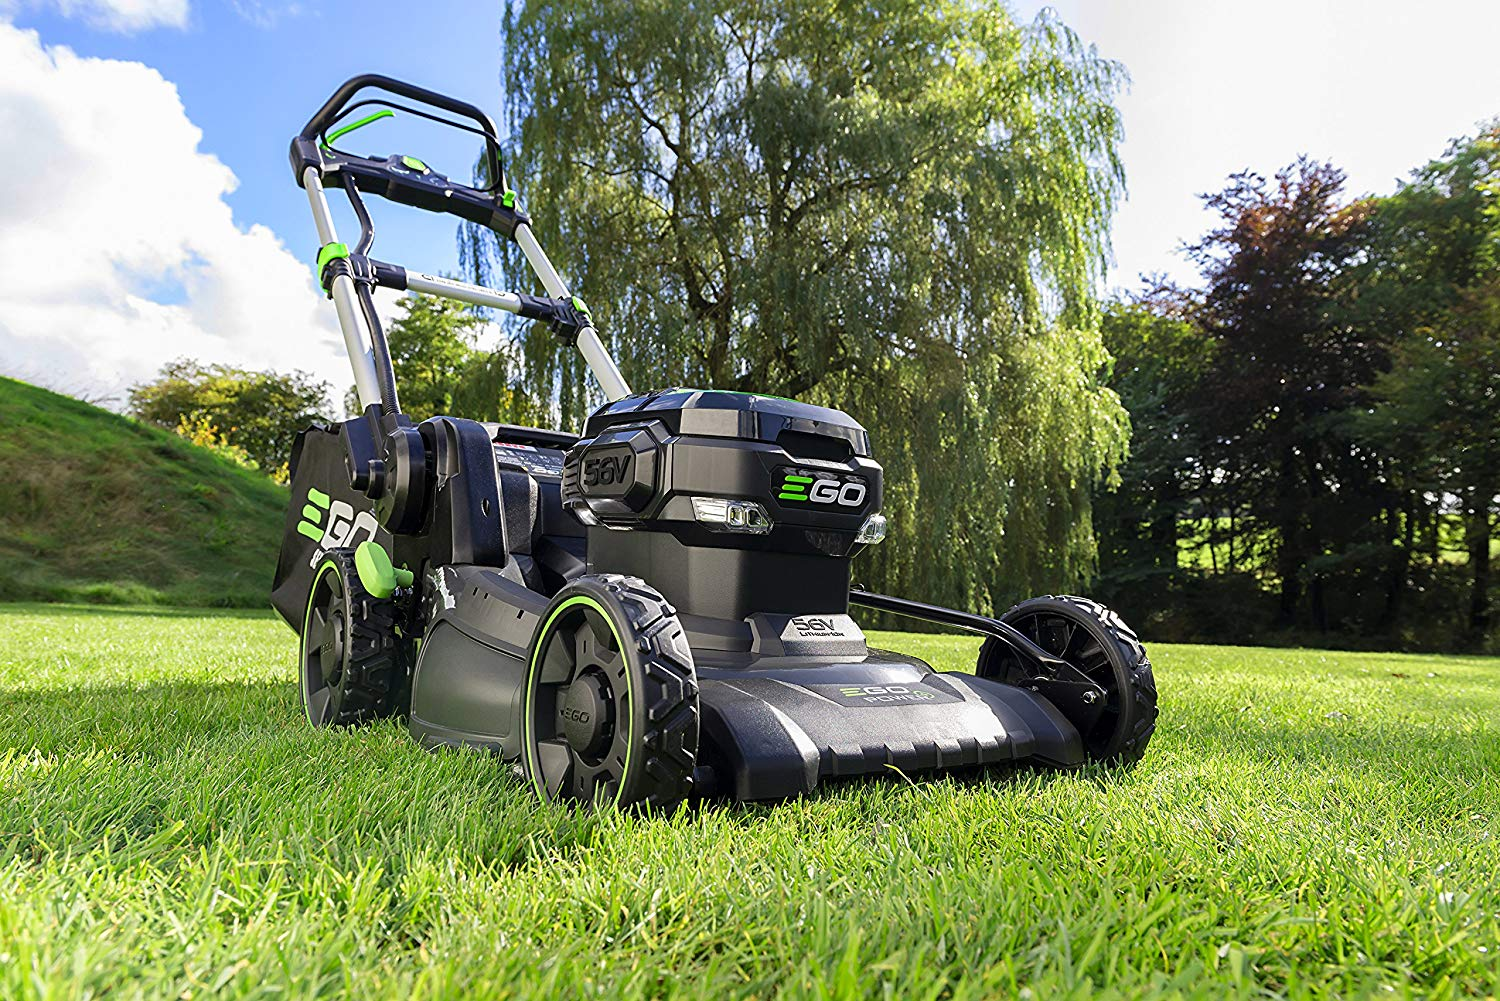 Best Cordless Lawn Mower 2020.Ego Lawn Mower Review An Excellent Battery Powered